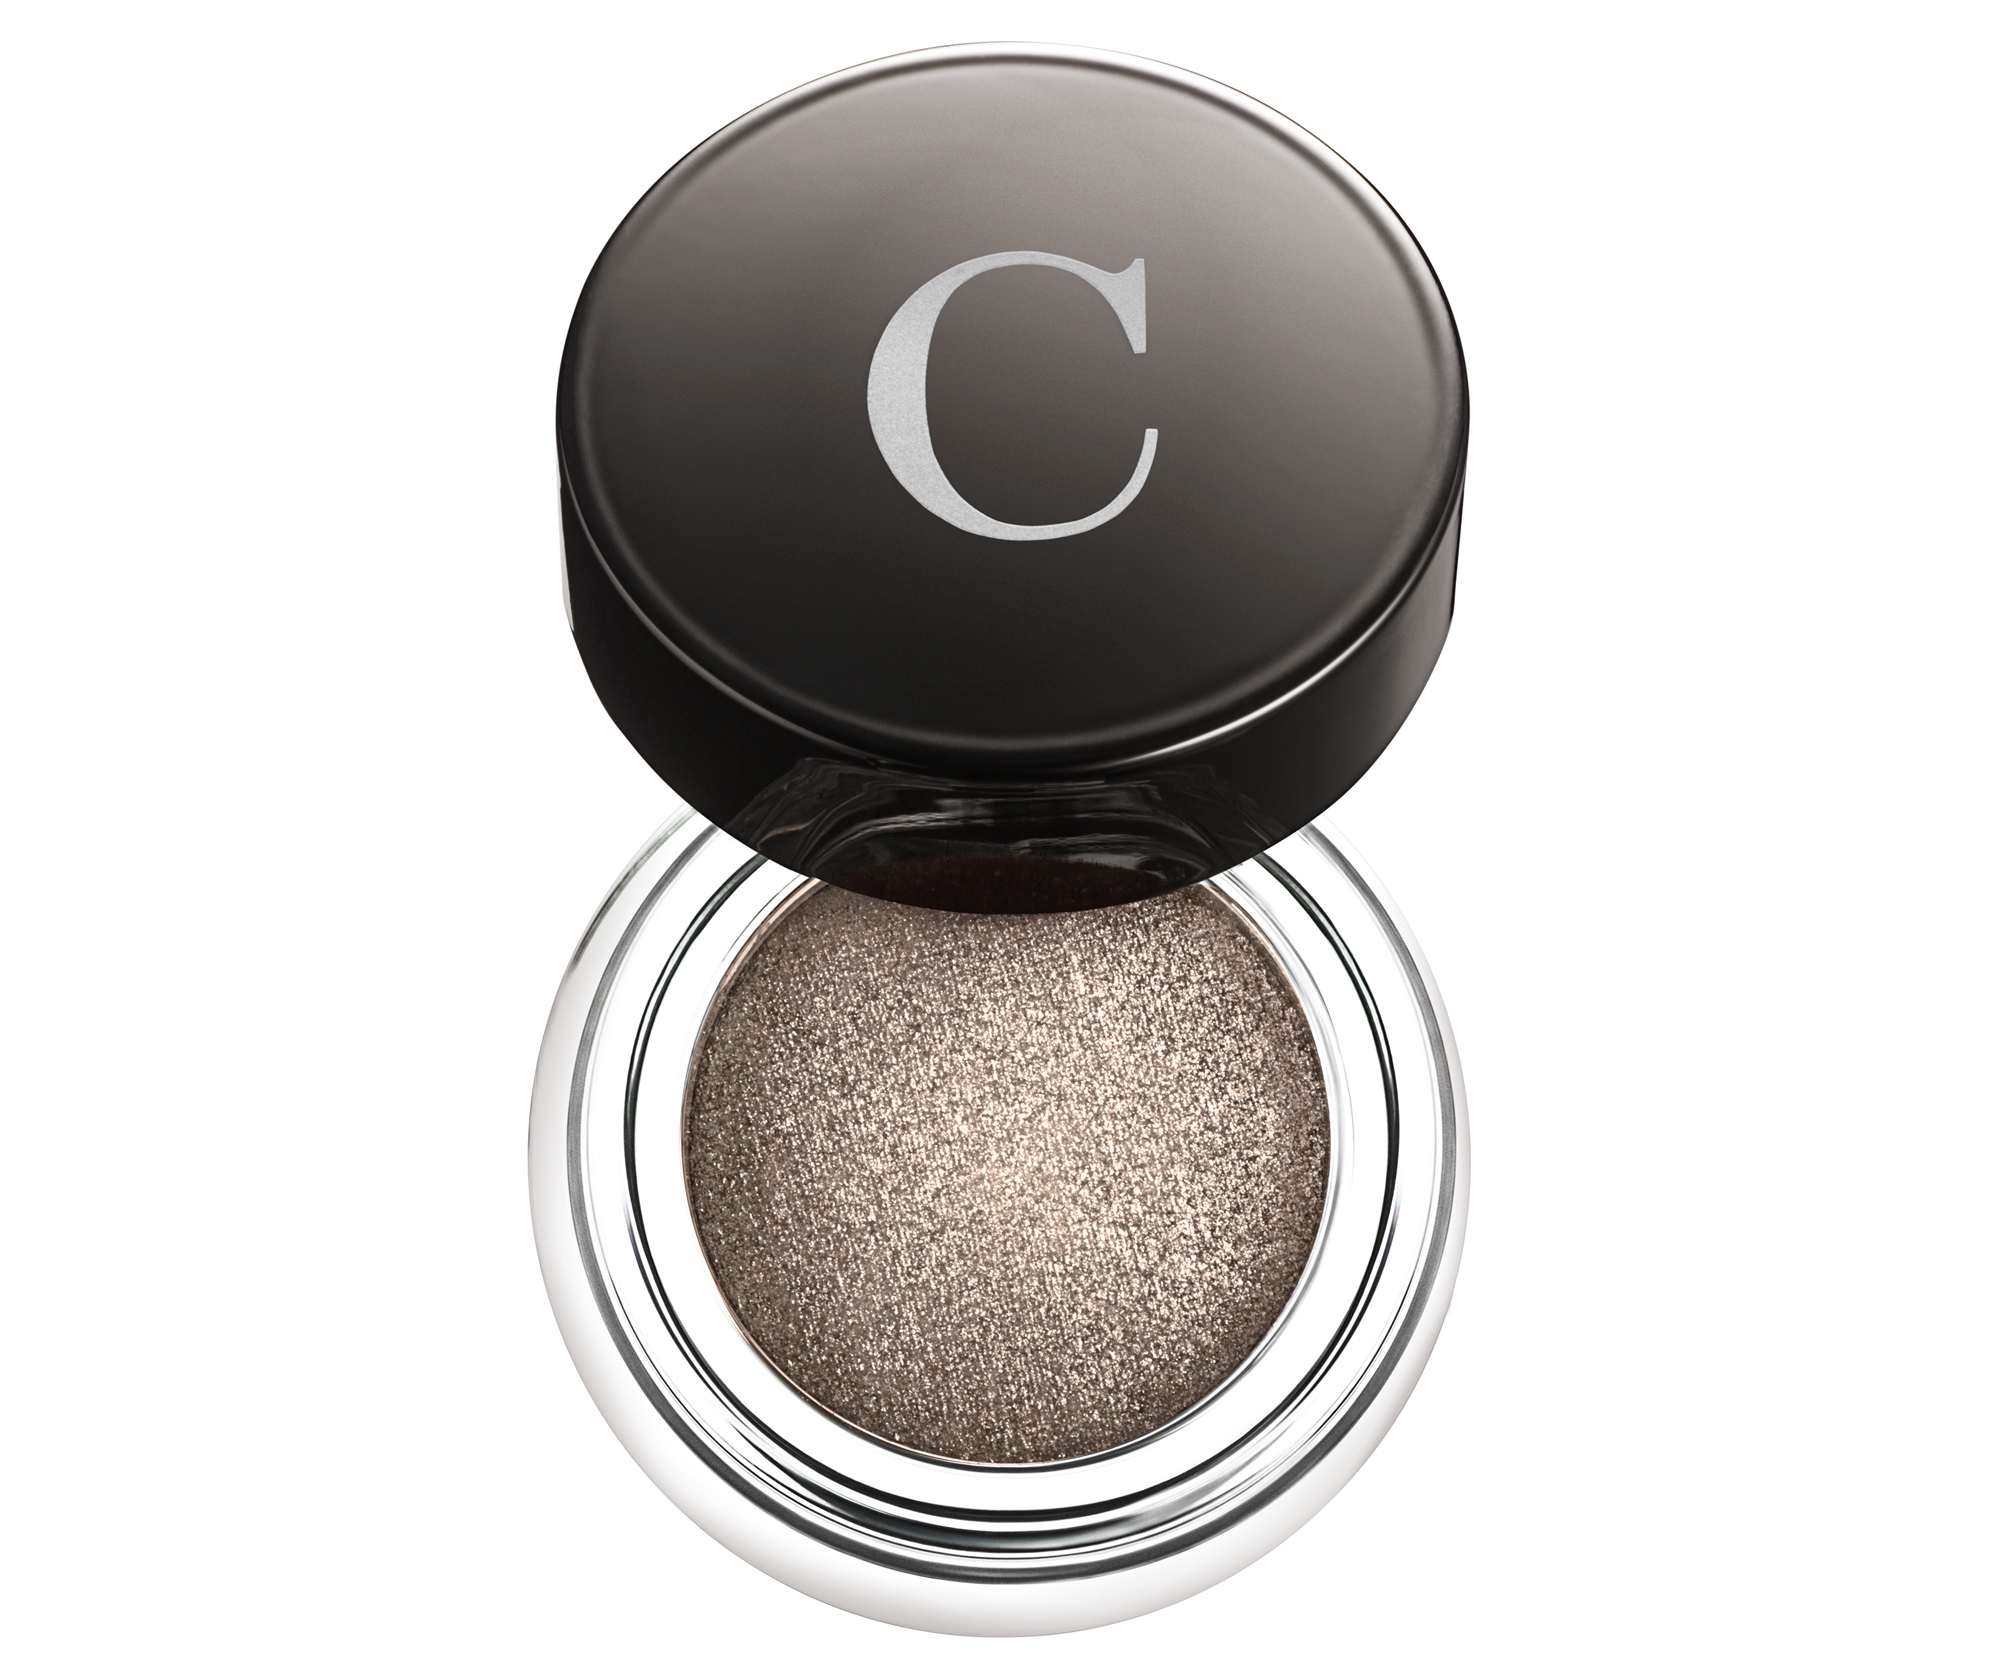 Chantecaille Mermaid Eye Colour in Triton